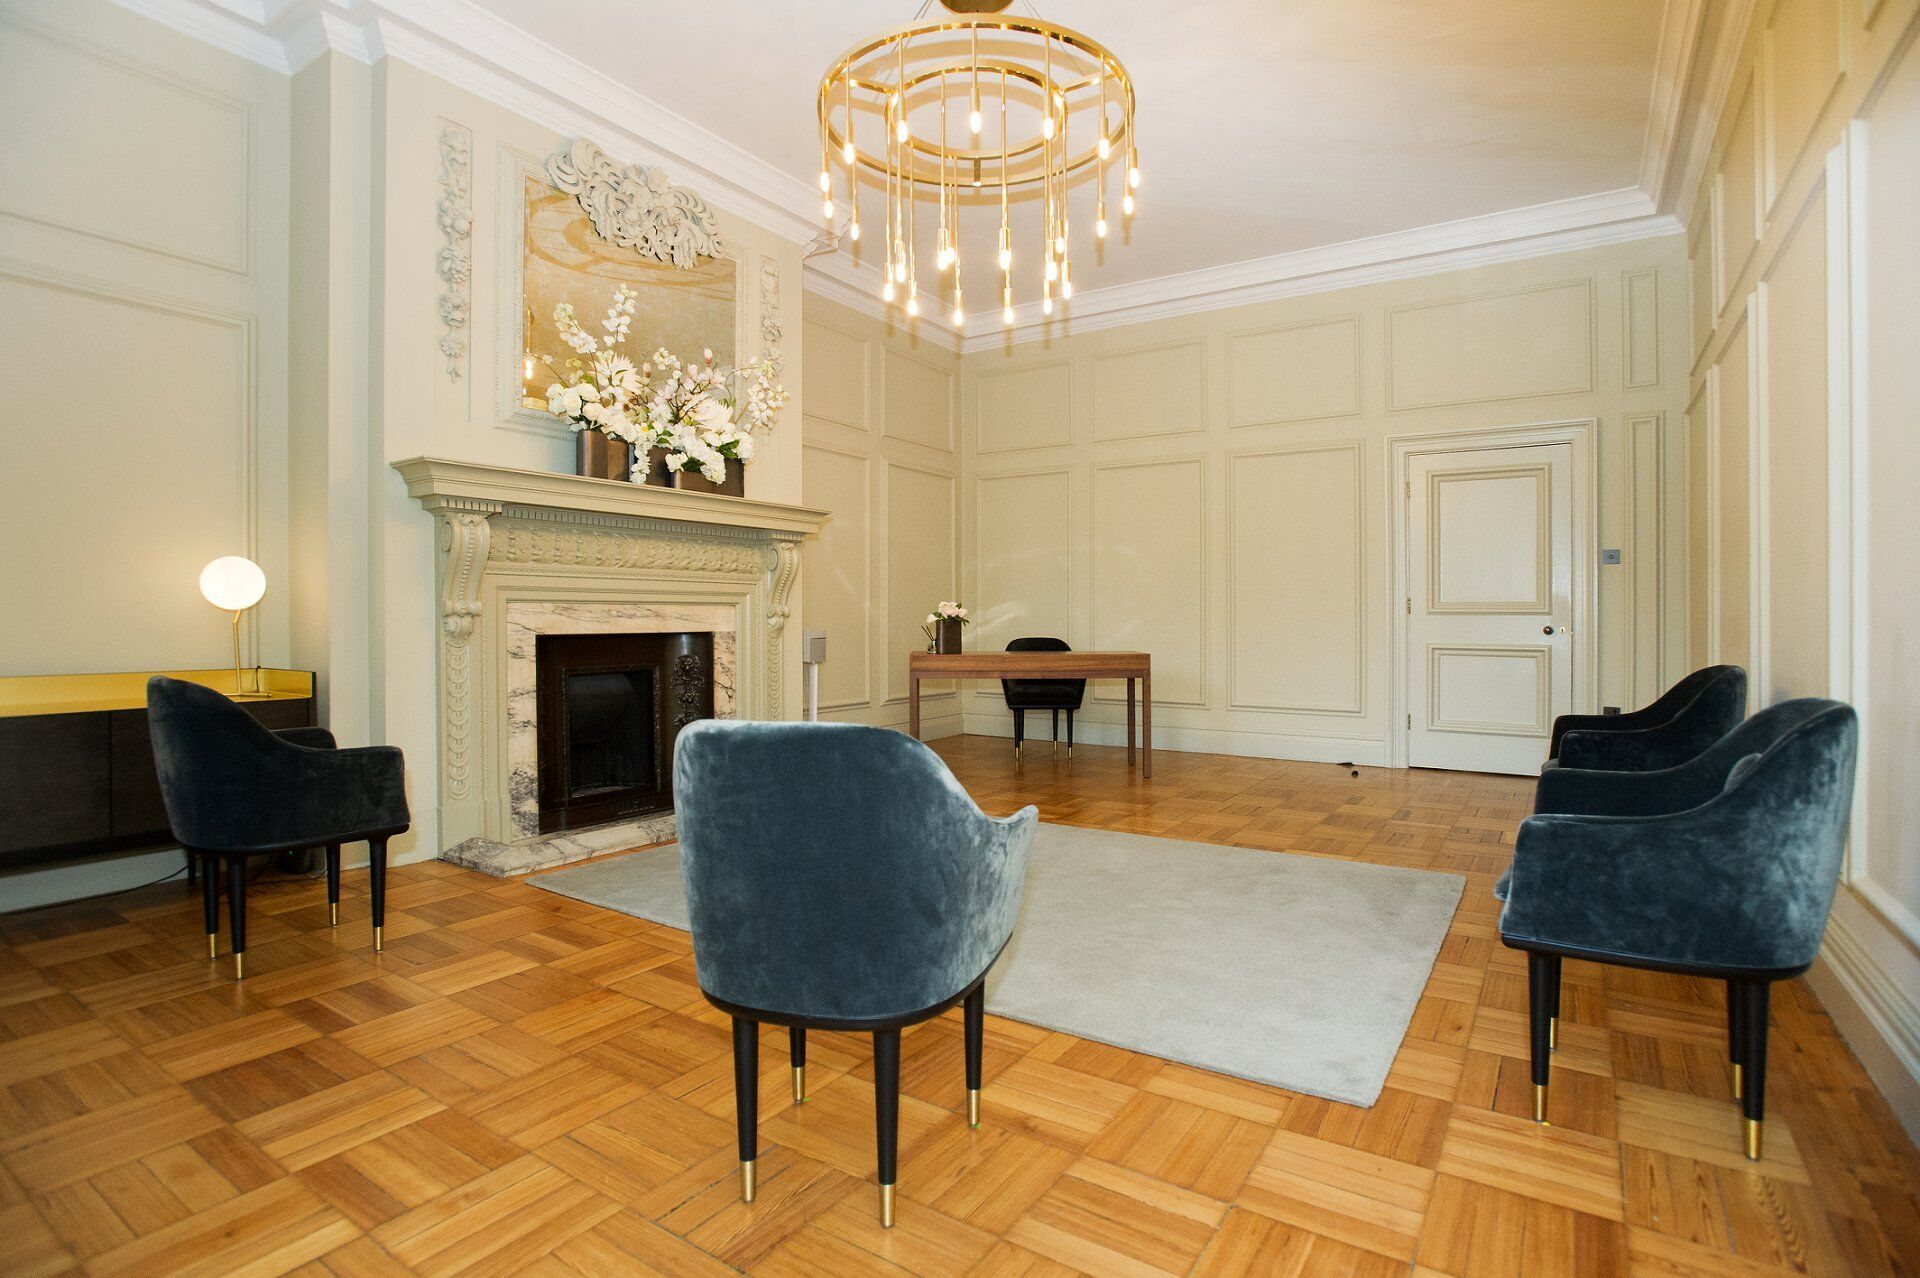 the pimlico room at old marylebone town hall has a lovely intimate feel